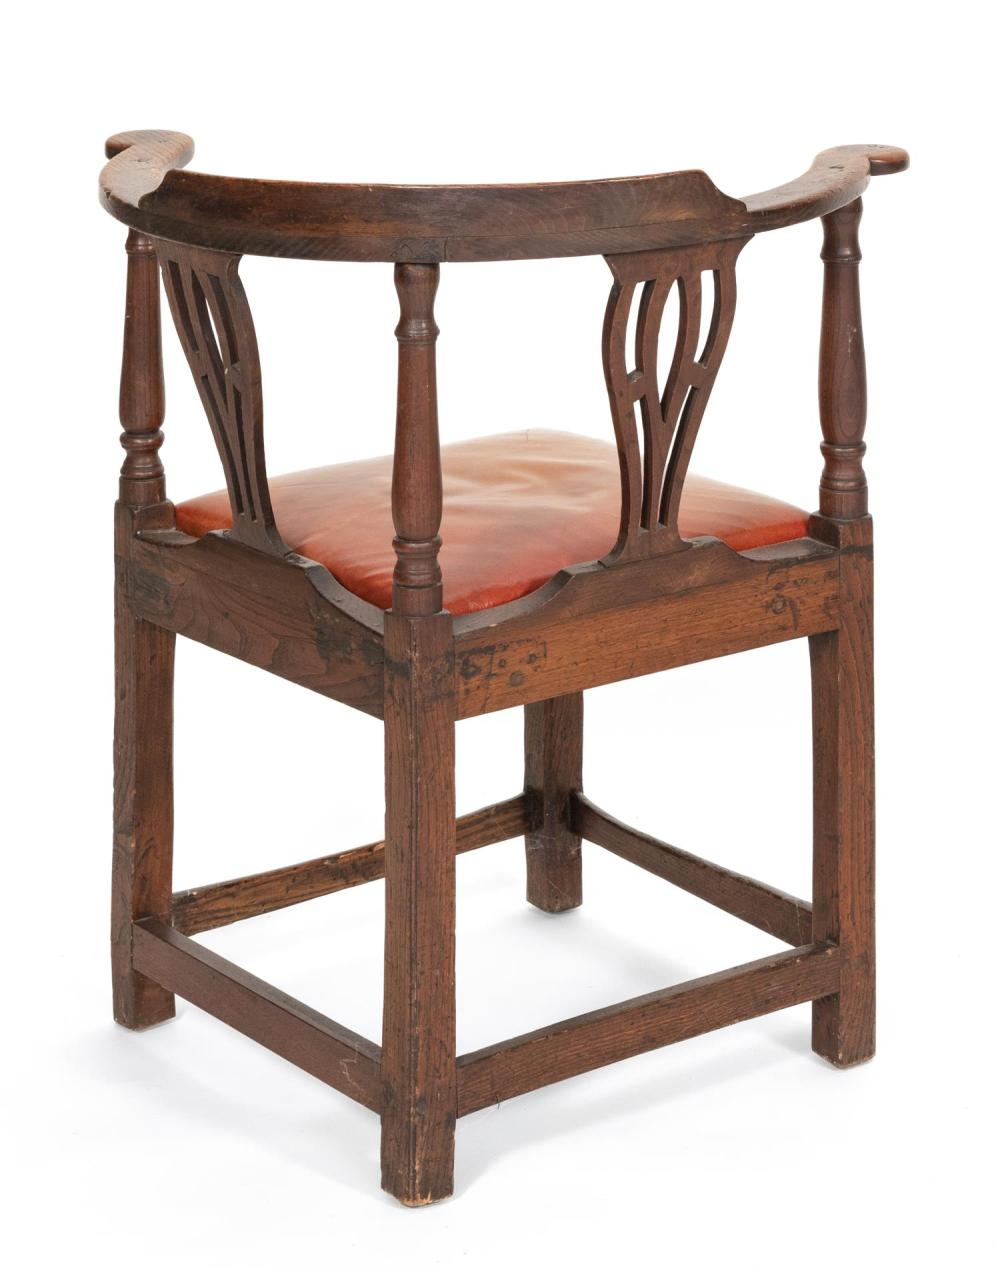 GEORGE II CORNER CHAIR In yew wood, with nice patina. Back with vertical pierced splats. Scrolled arms. Slip seat. Block legs joined...